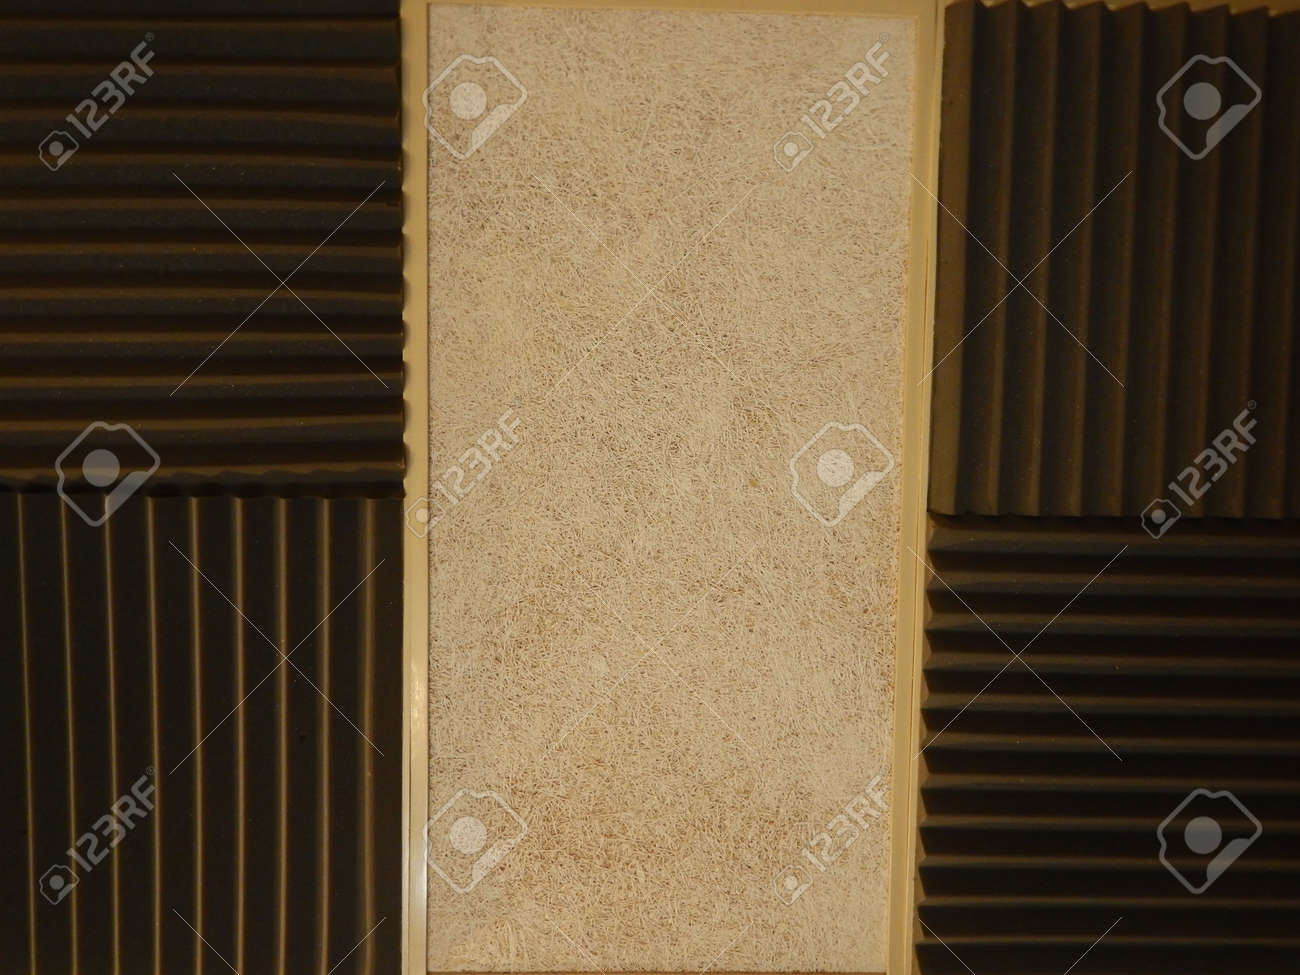 Acoustical Foam Or Tiles For Sound Dampening. Music Room. Soundproof ...